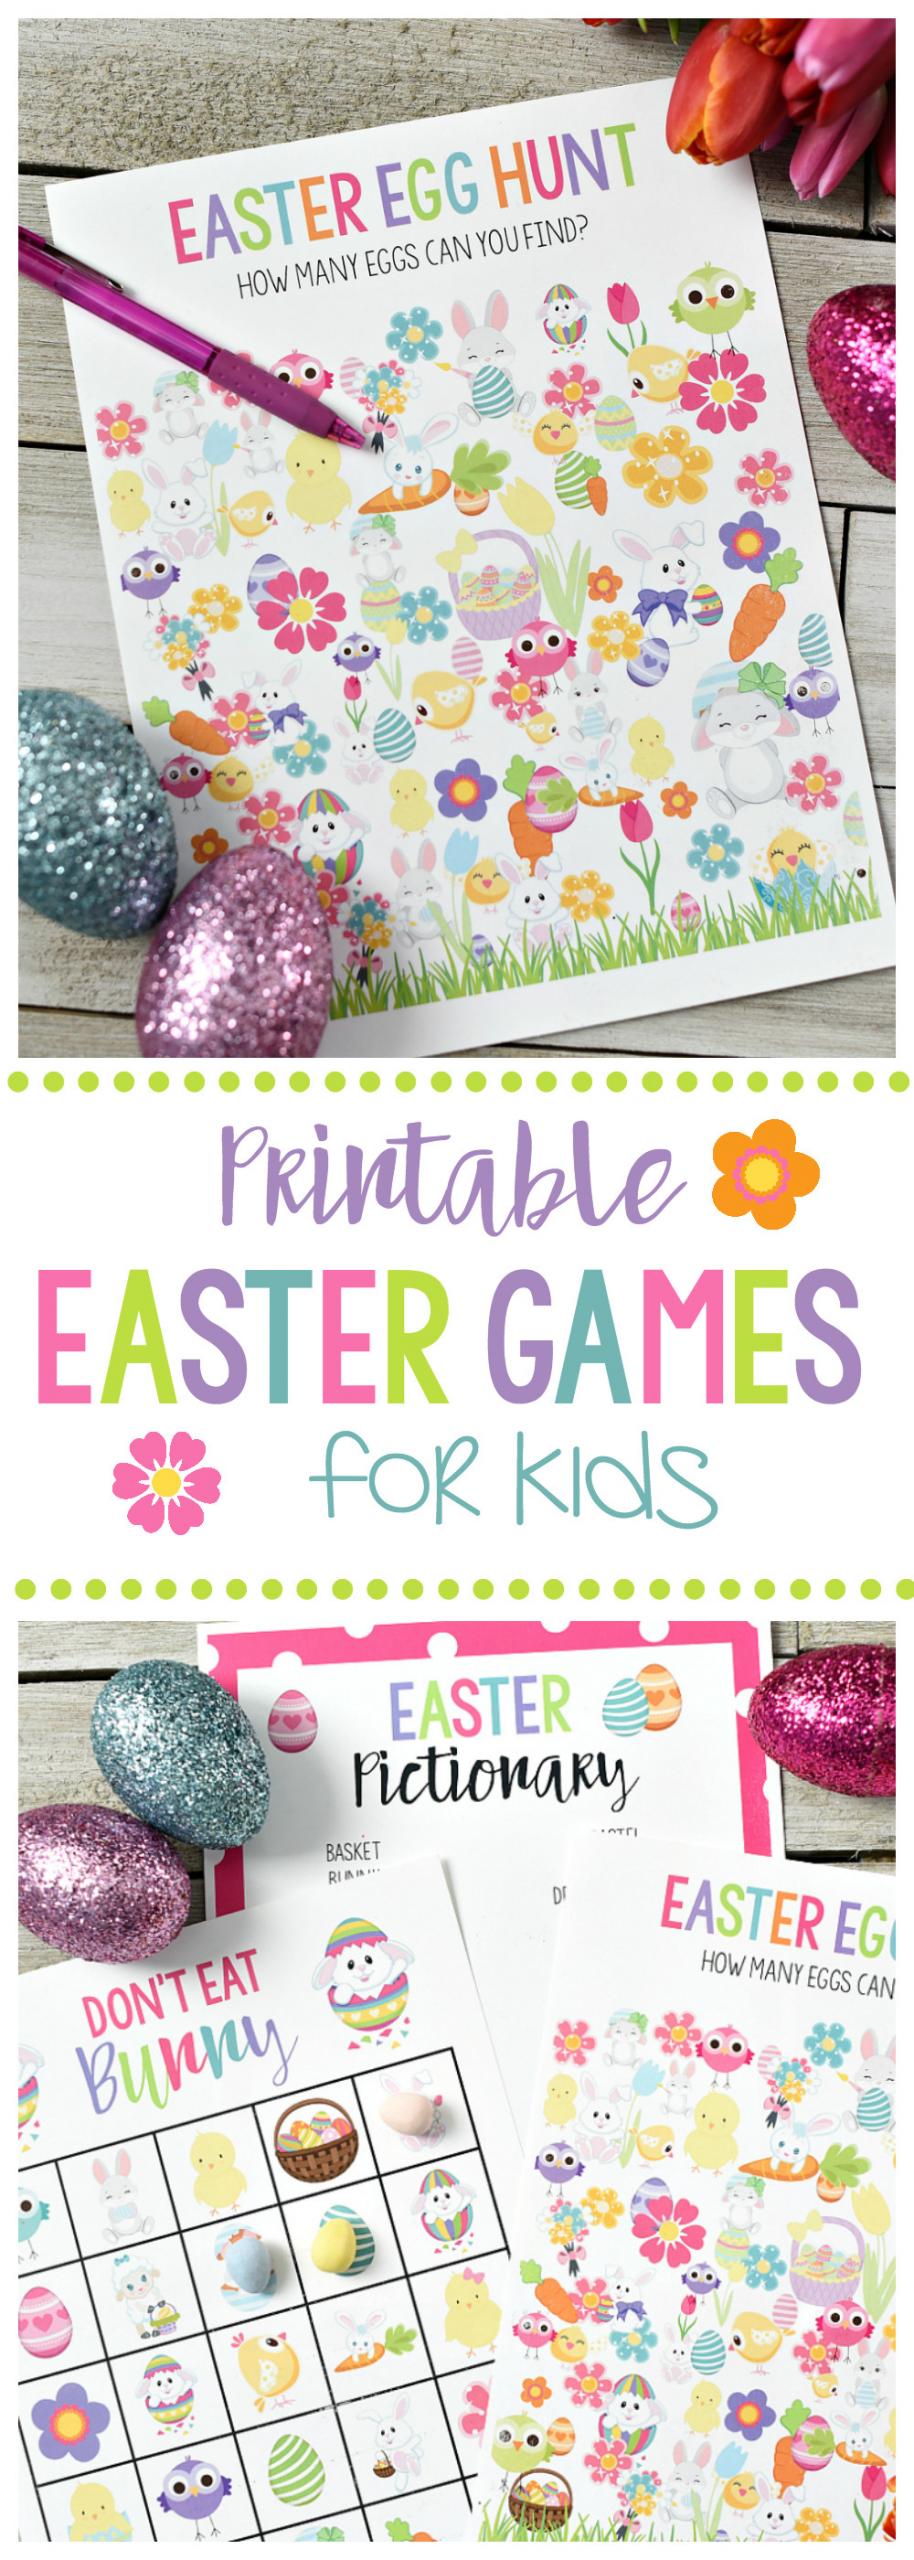 Easter Party Games For Kids  Free Printable Easter Games for Kids – Fun Squared